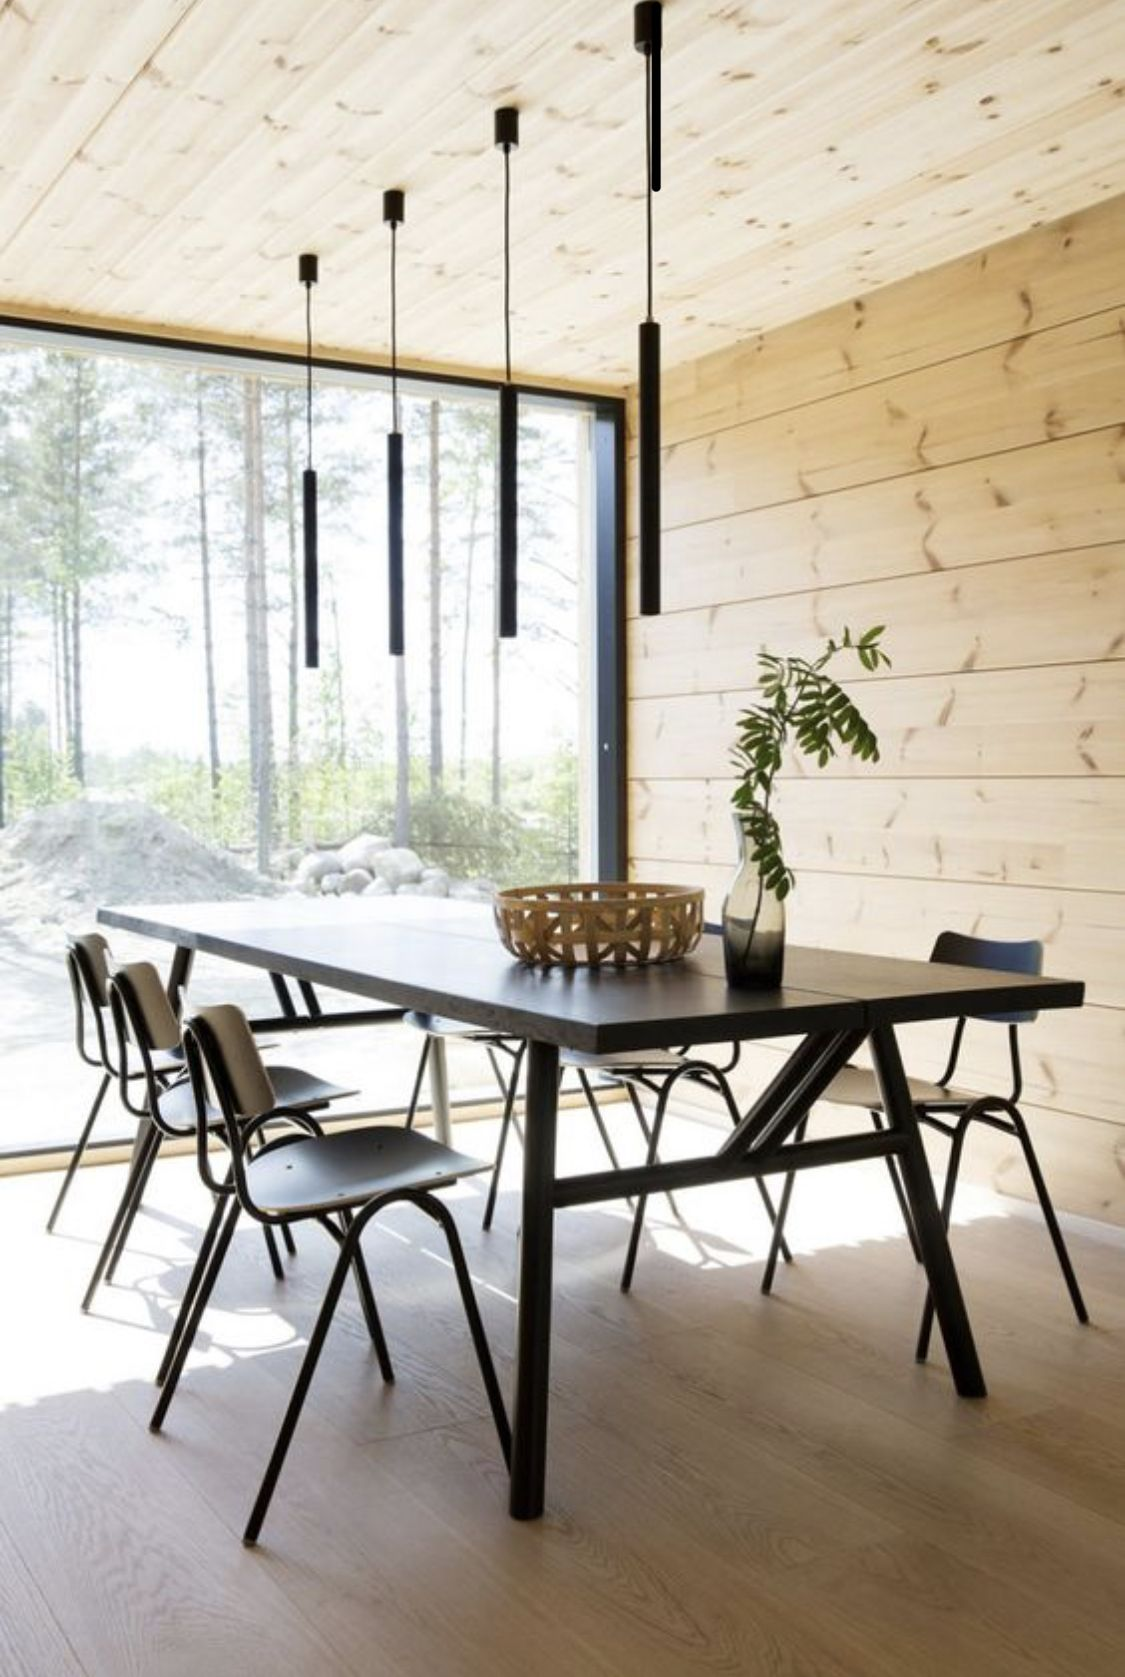 Pin By Gosia Dekempe On Upstate Wall Finishes Log Home Interiors Cabin Interior Design Log Home Interior